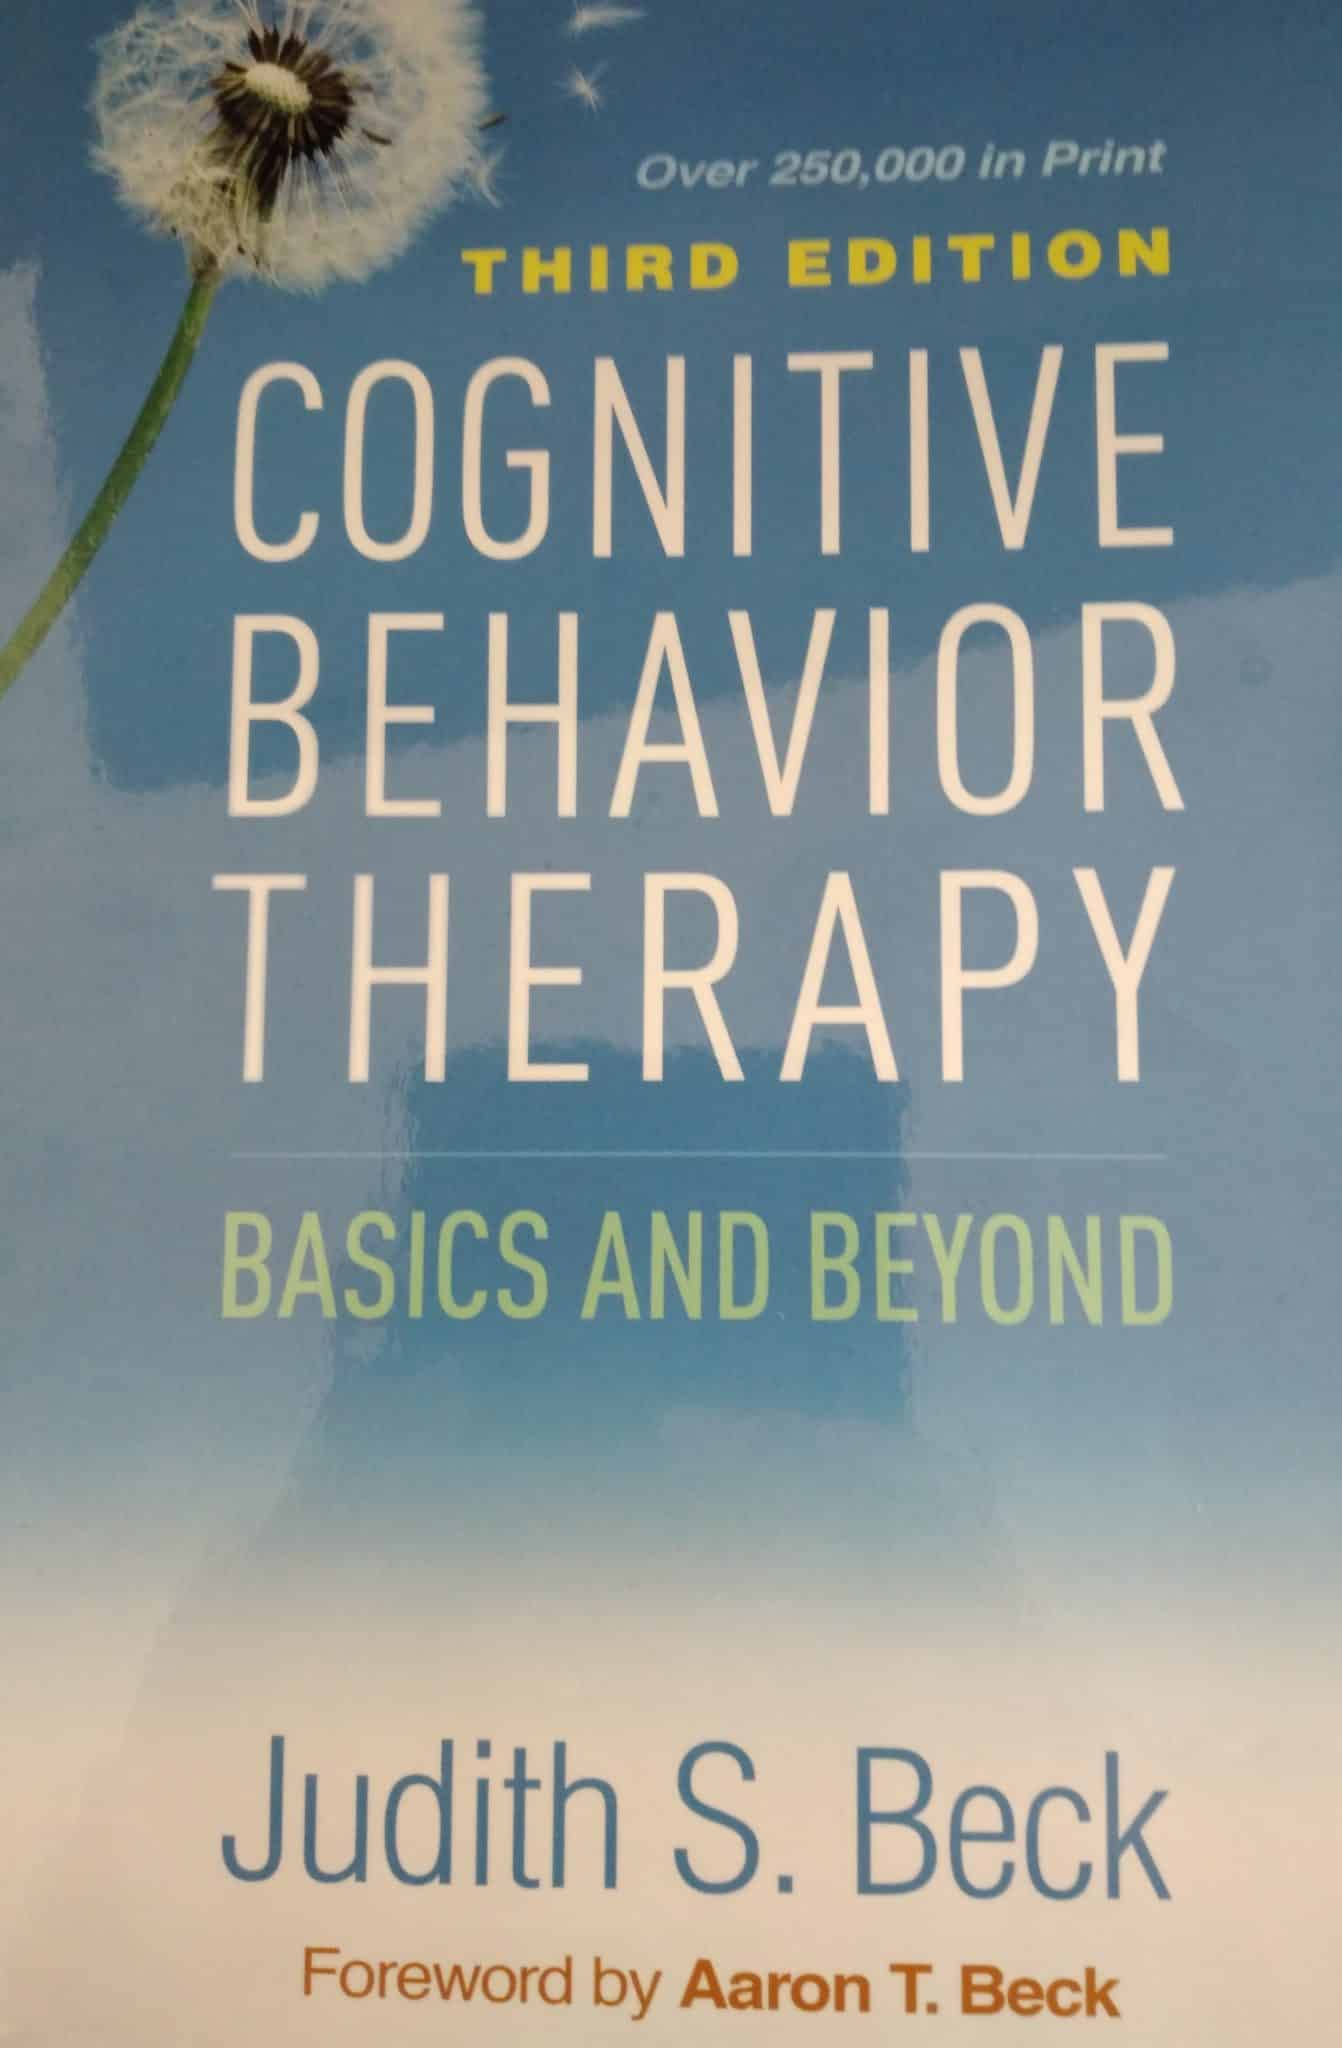 Cognitive Behavior Therapy. Basics And Beyond. Third Edition